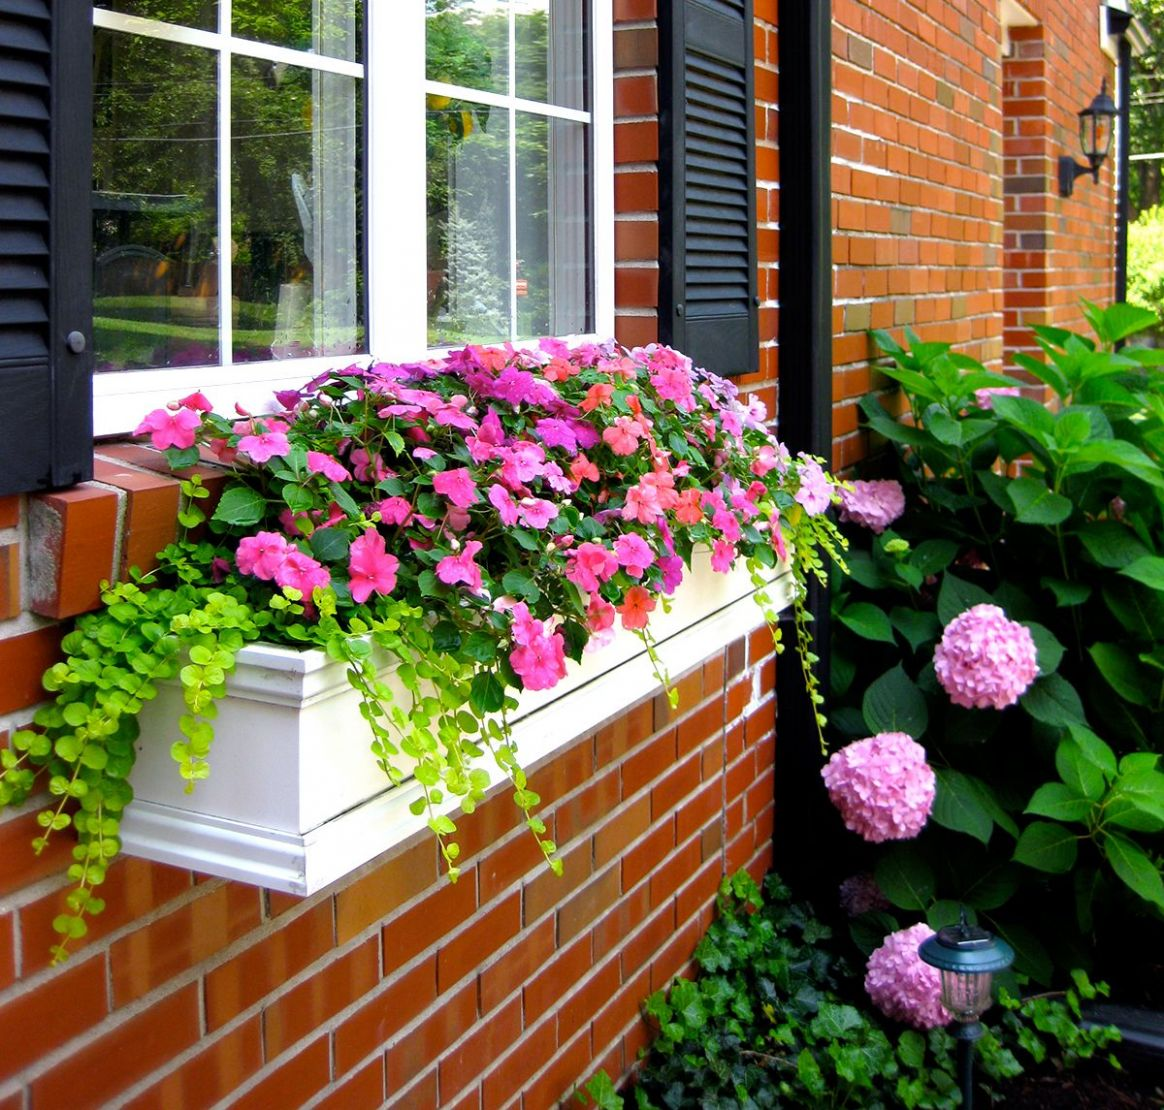 How to Hang Window Boxes the Right Way (With images) | Window box ...